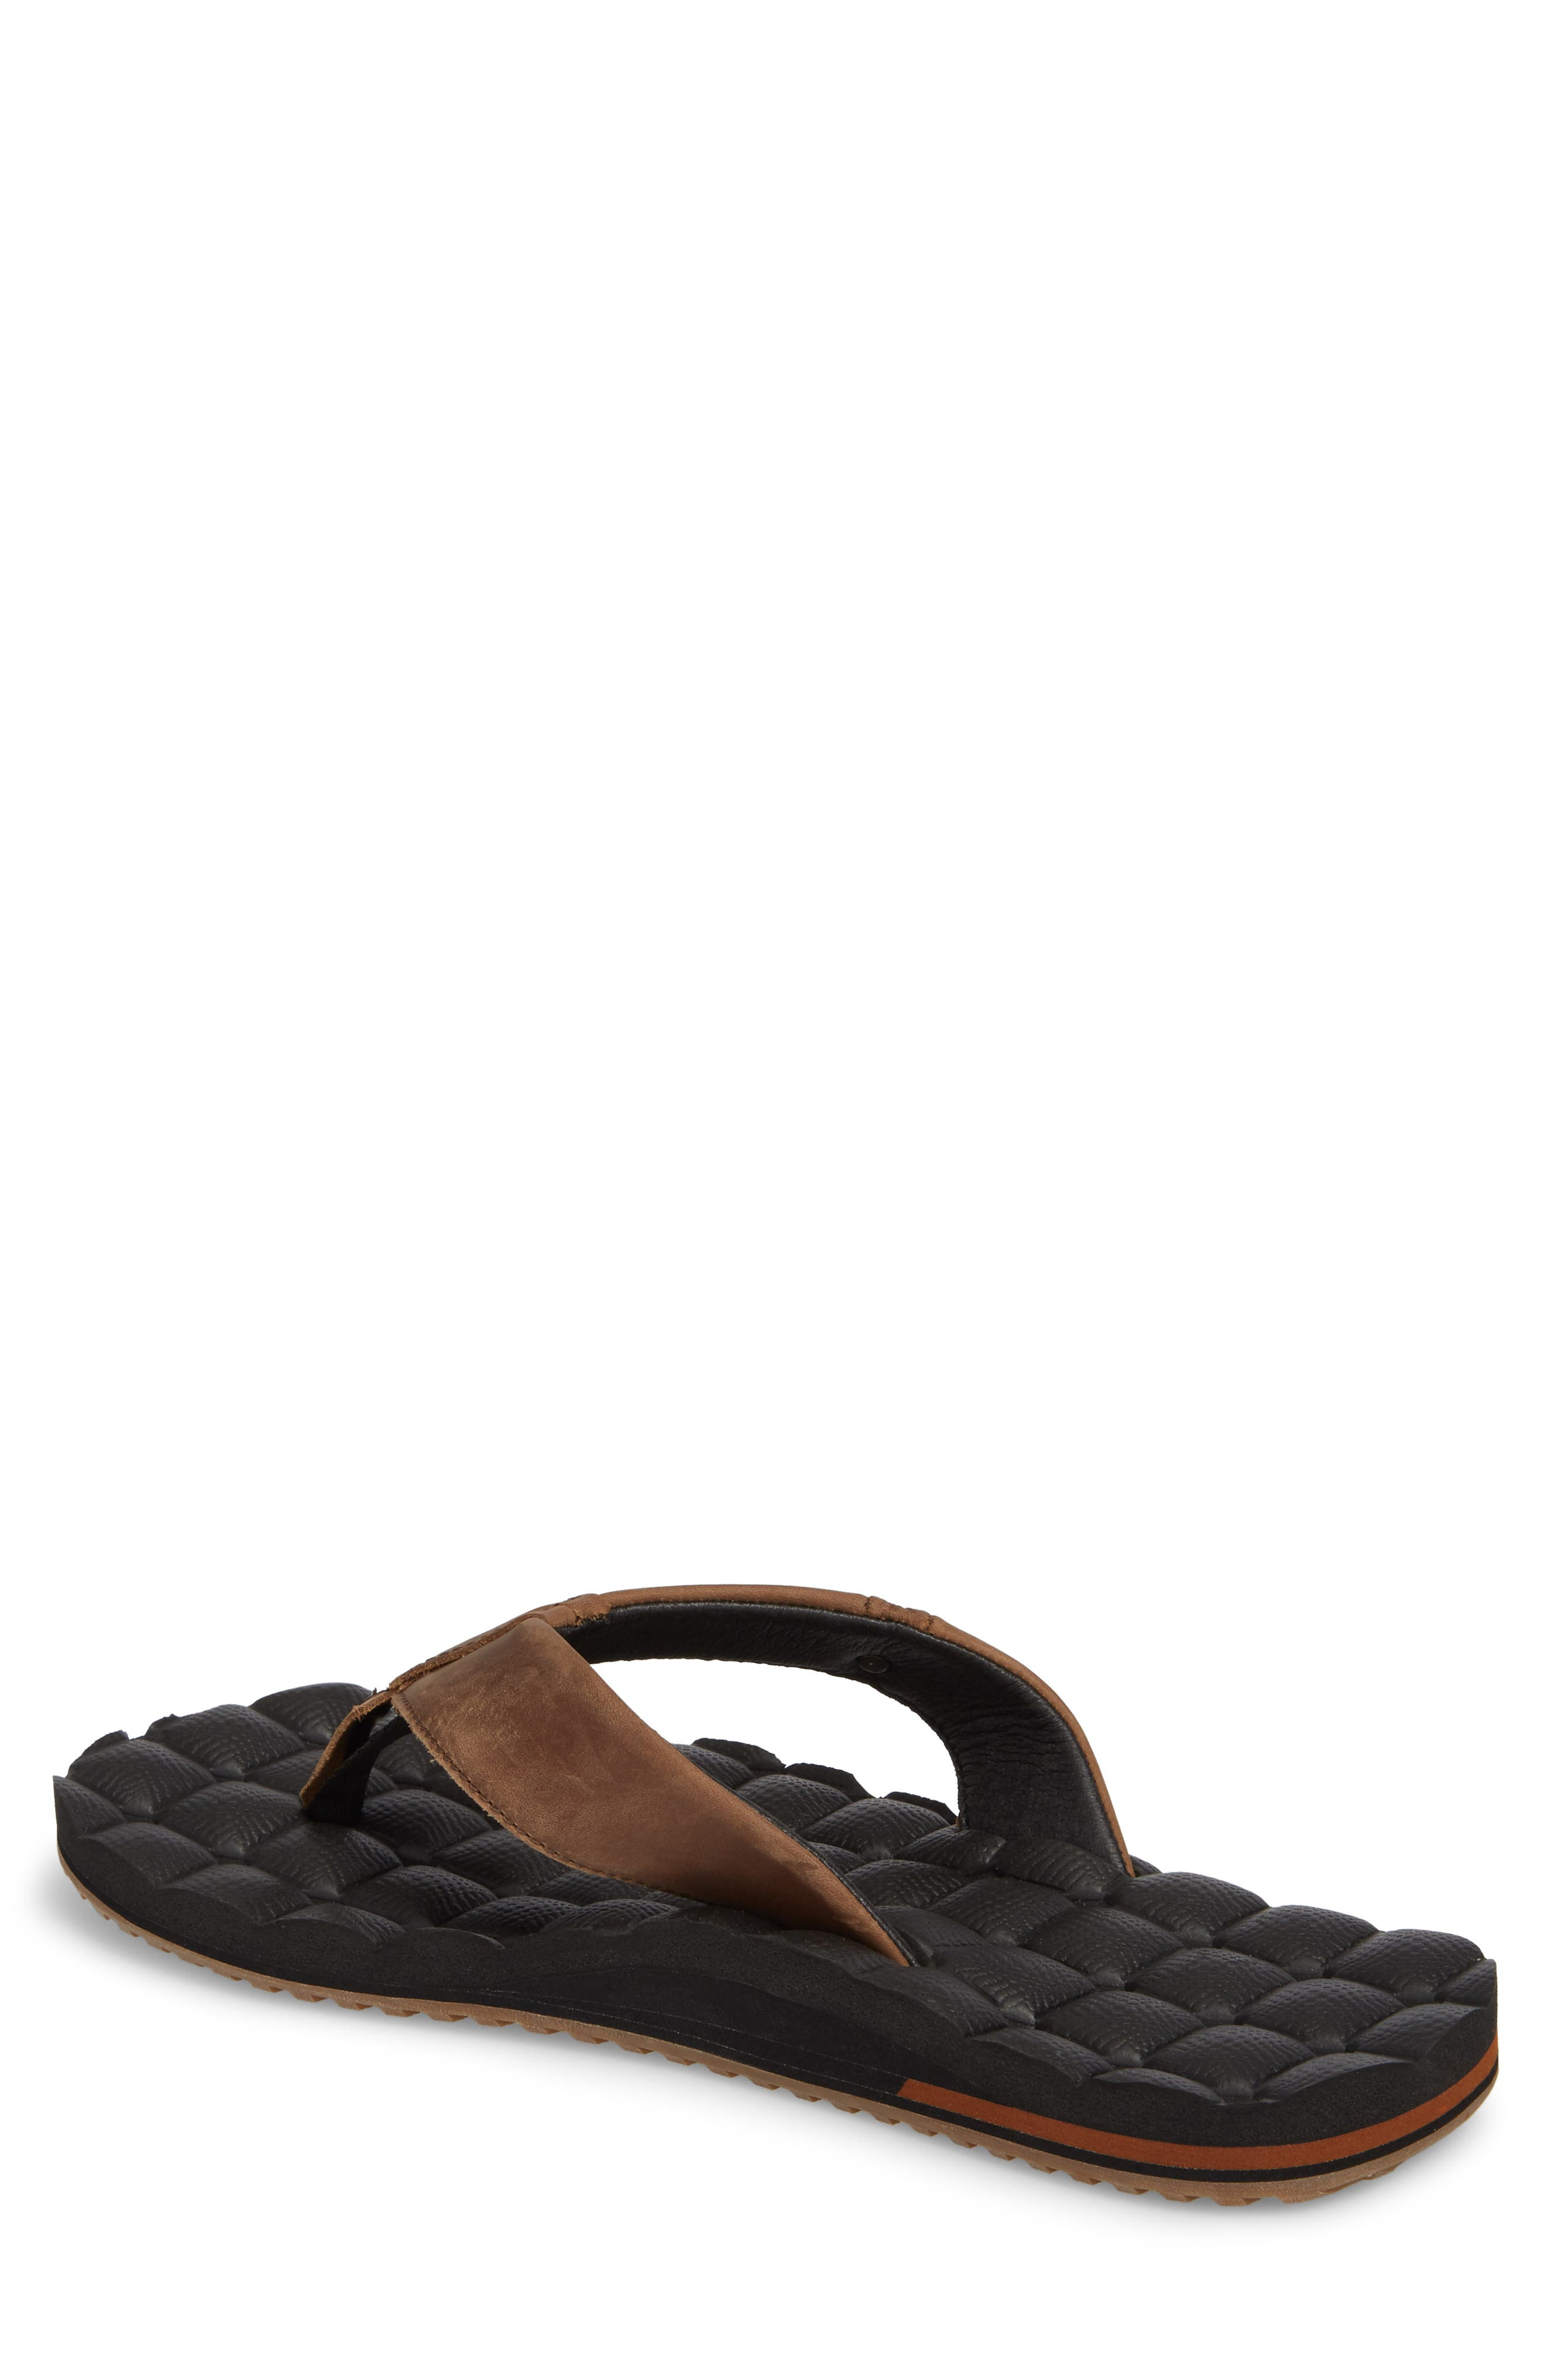 'Recliner' Leather Flip Flop,                             Alternate thumbnail 2, color,                             Brown Leather